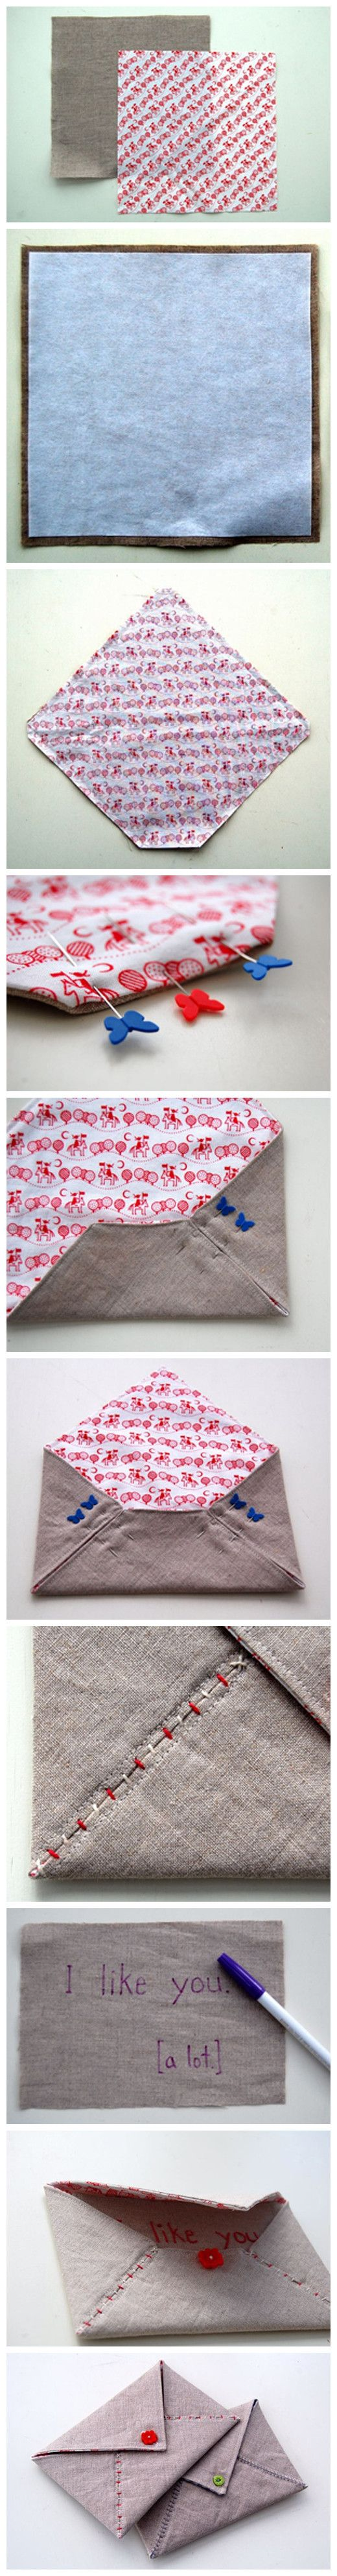 Stitched envelope: Cute Cards, Crafts Ideas, Gift, Fabric Envelope, Stitches Envelopes, Valentine, Fabrics Envelopes, Blog Ideas, Love Letters